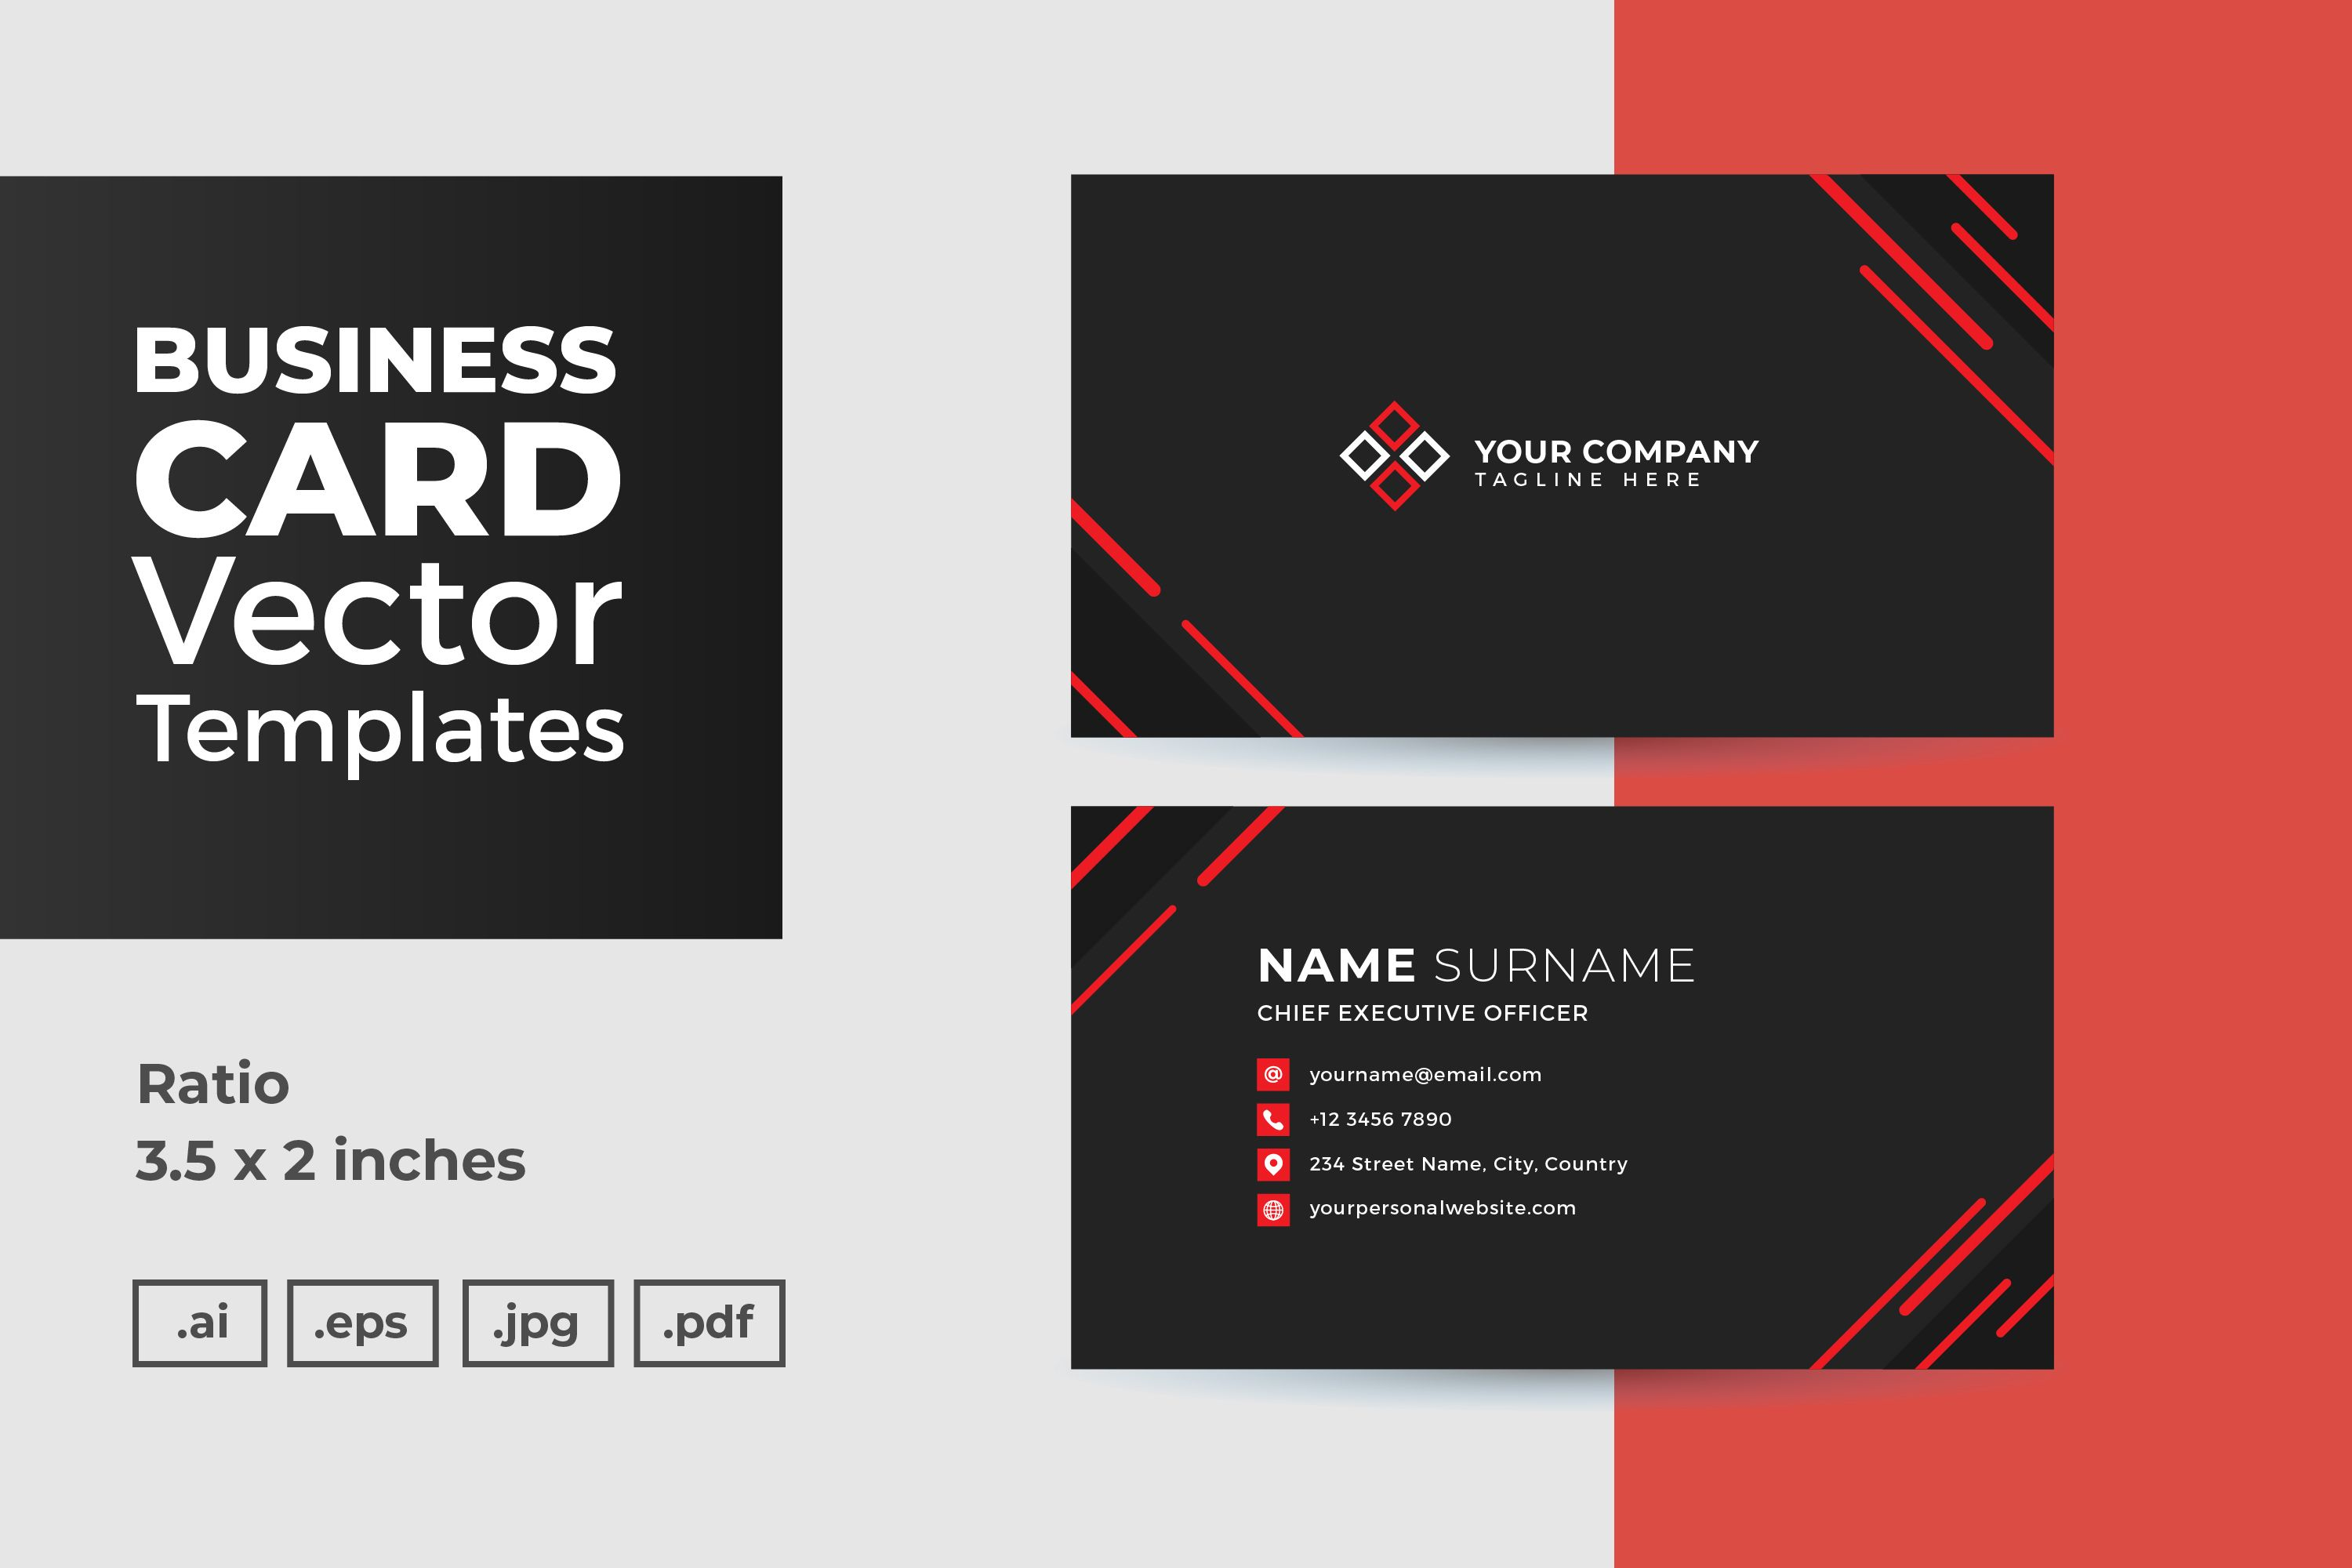 Business Card Vector Template Graphic By Dendysign